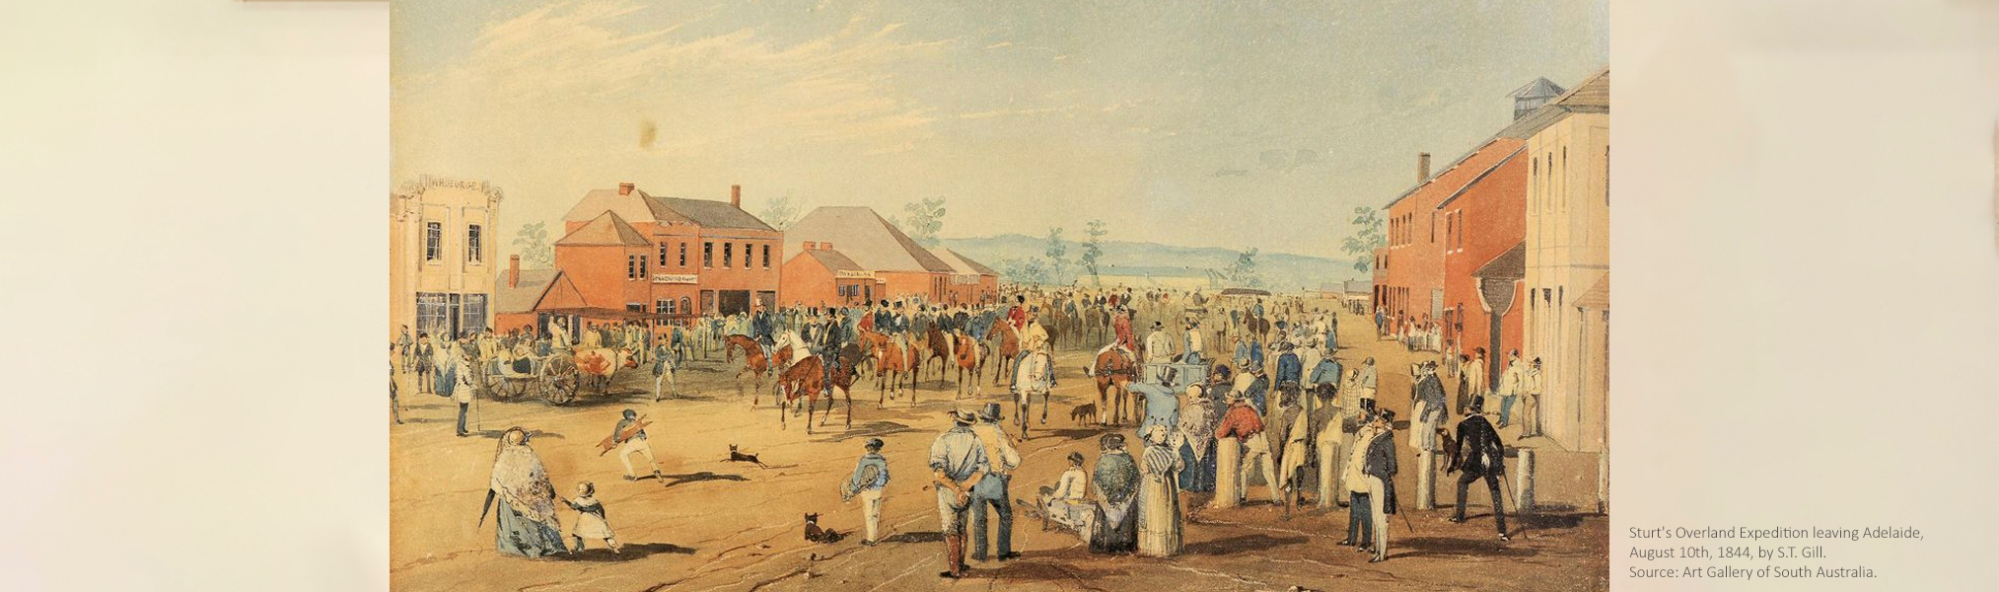 Sturt's Overland Expedition leaving Adelaide, August 10th, 1844, by S.T. Gill. Source: Art Gallery of South Australia.